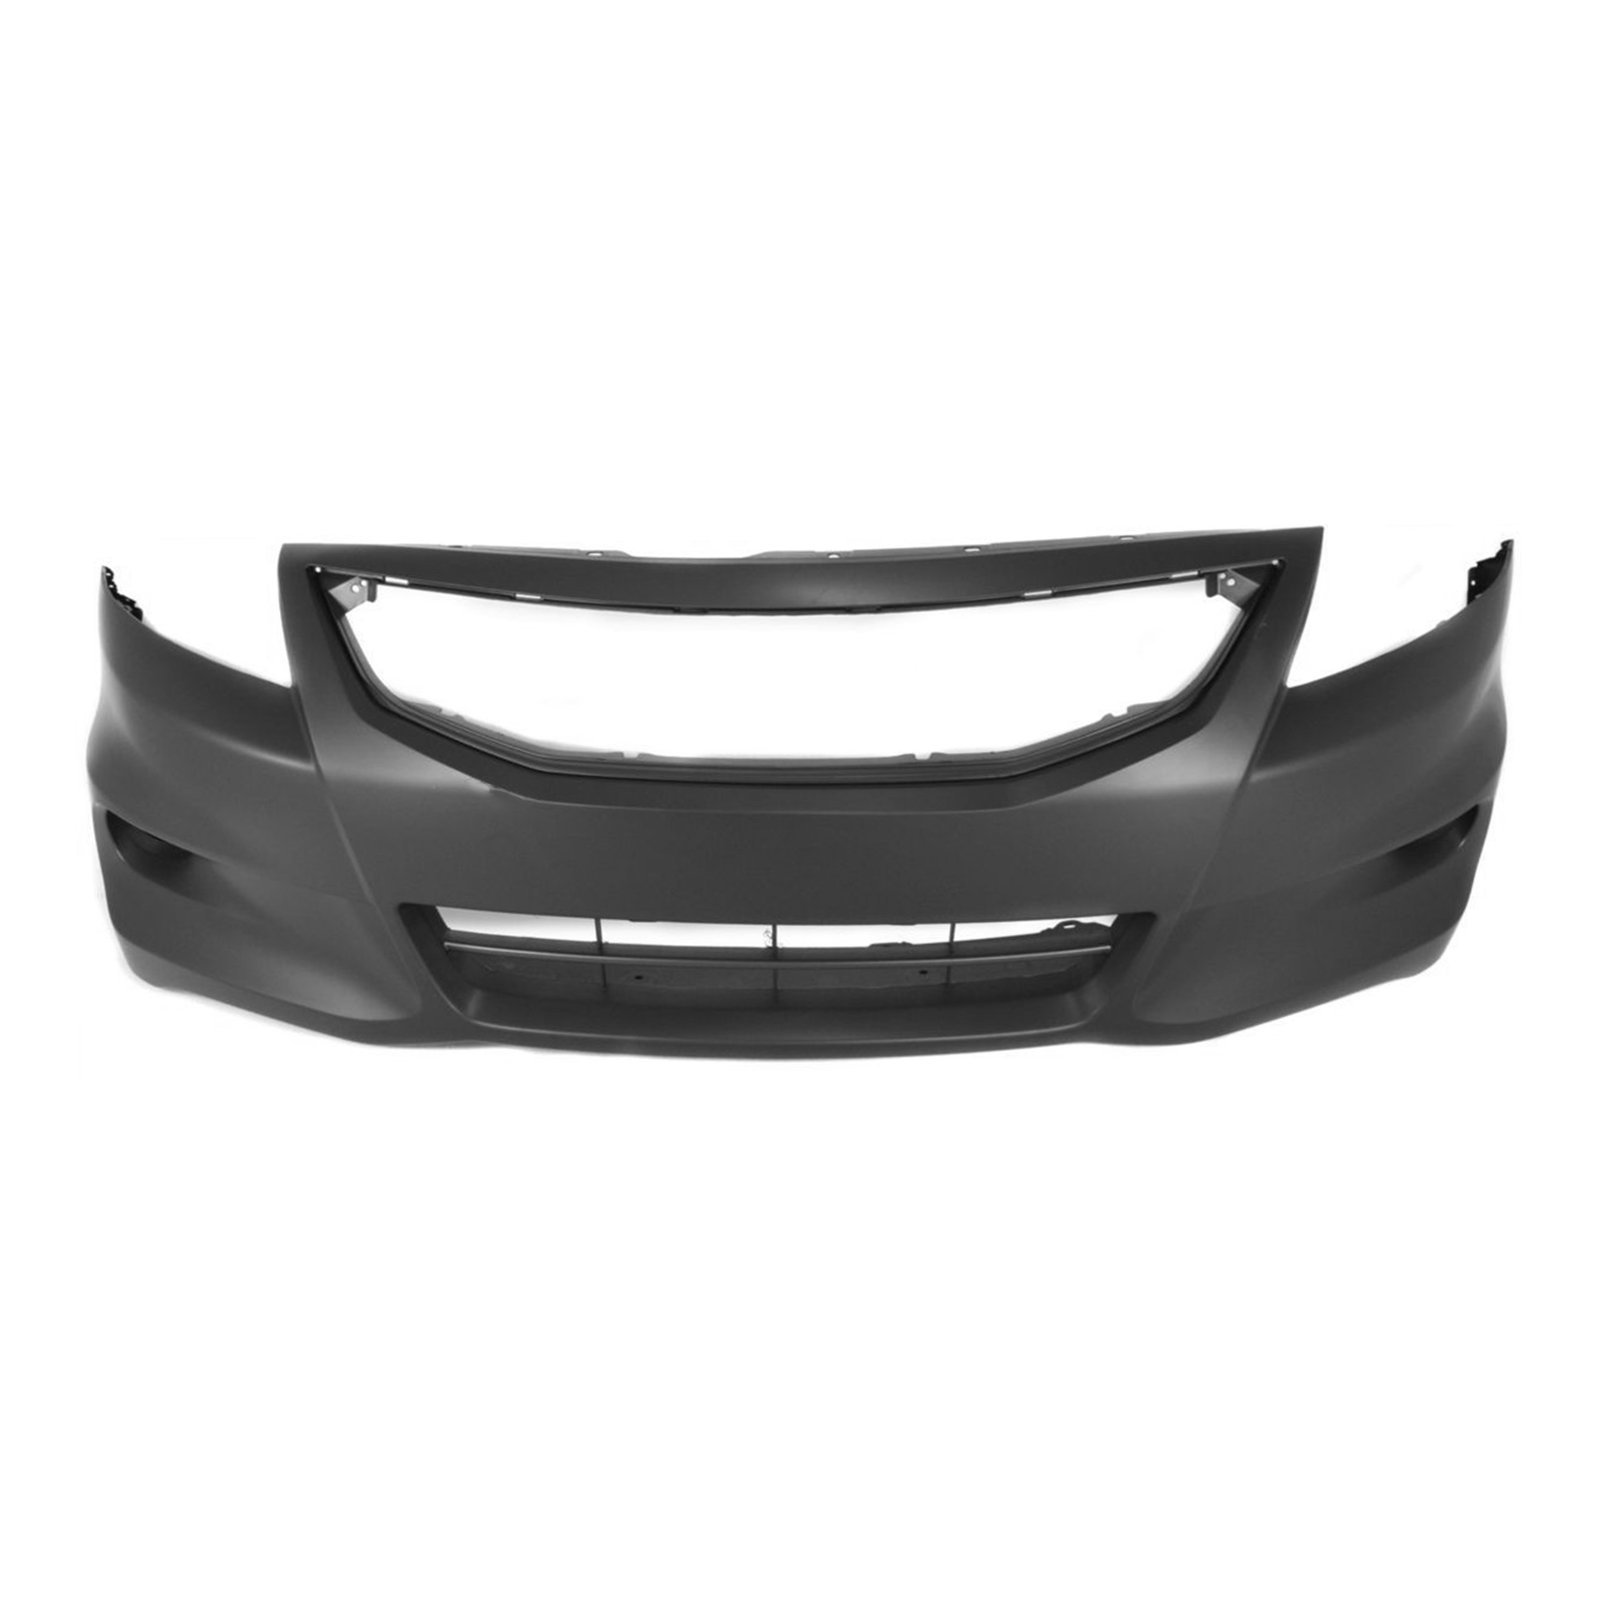 MBI AUTO - Painted to Match, Front Bumper Cover Fascia for 2011 2012 Honda Accord Coupe 2-Door 11 12, HO1000277